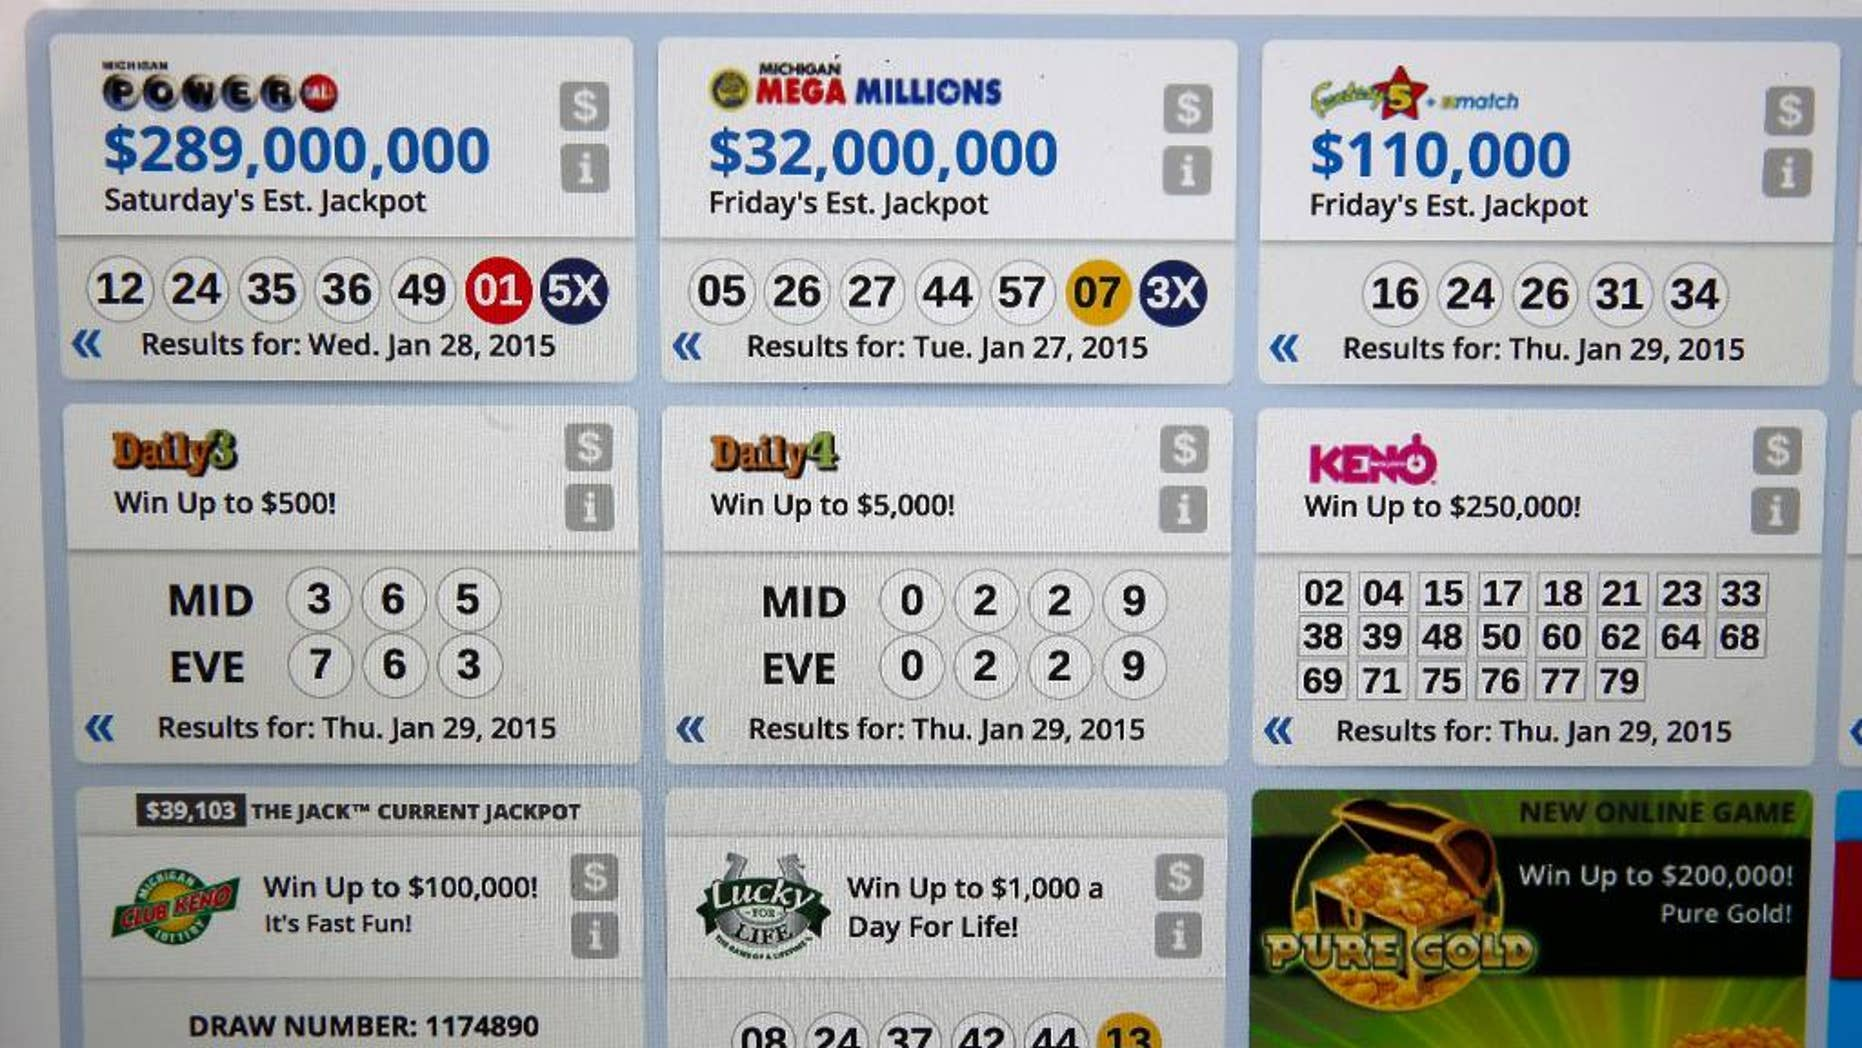 Winning numbers are shown on the Michigan Lottery webpage in Detroit Friday, Jan. 30, 2015. The winning numbers for the Midday Daily 4 on Thursday afternoon and the Daily 4 numbers drawn that evening were the same: zero, two, two and nine. (AP Photo/Paul Sancya)